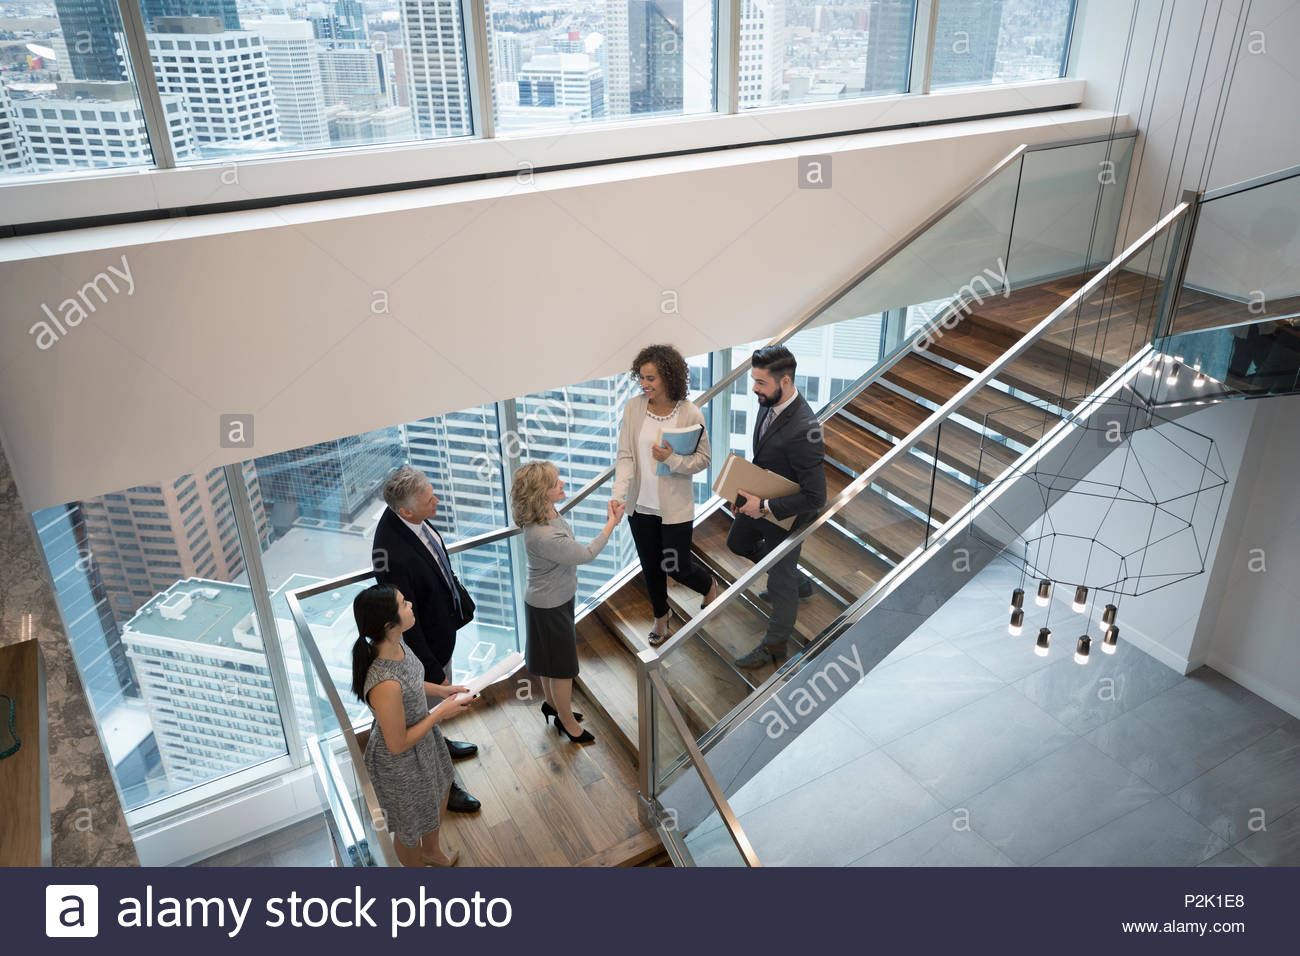 Business people handshaking on modern, urban office staircase Stock Photo